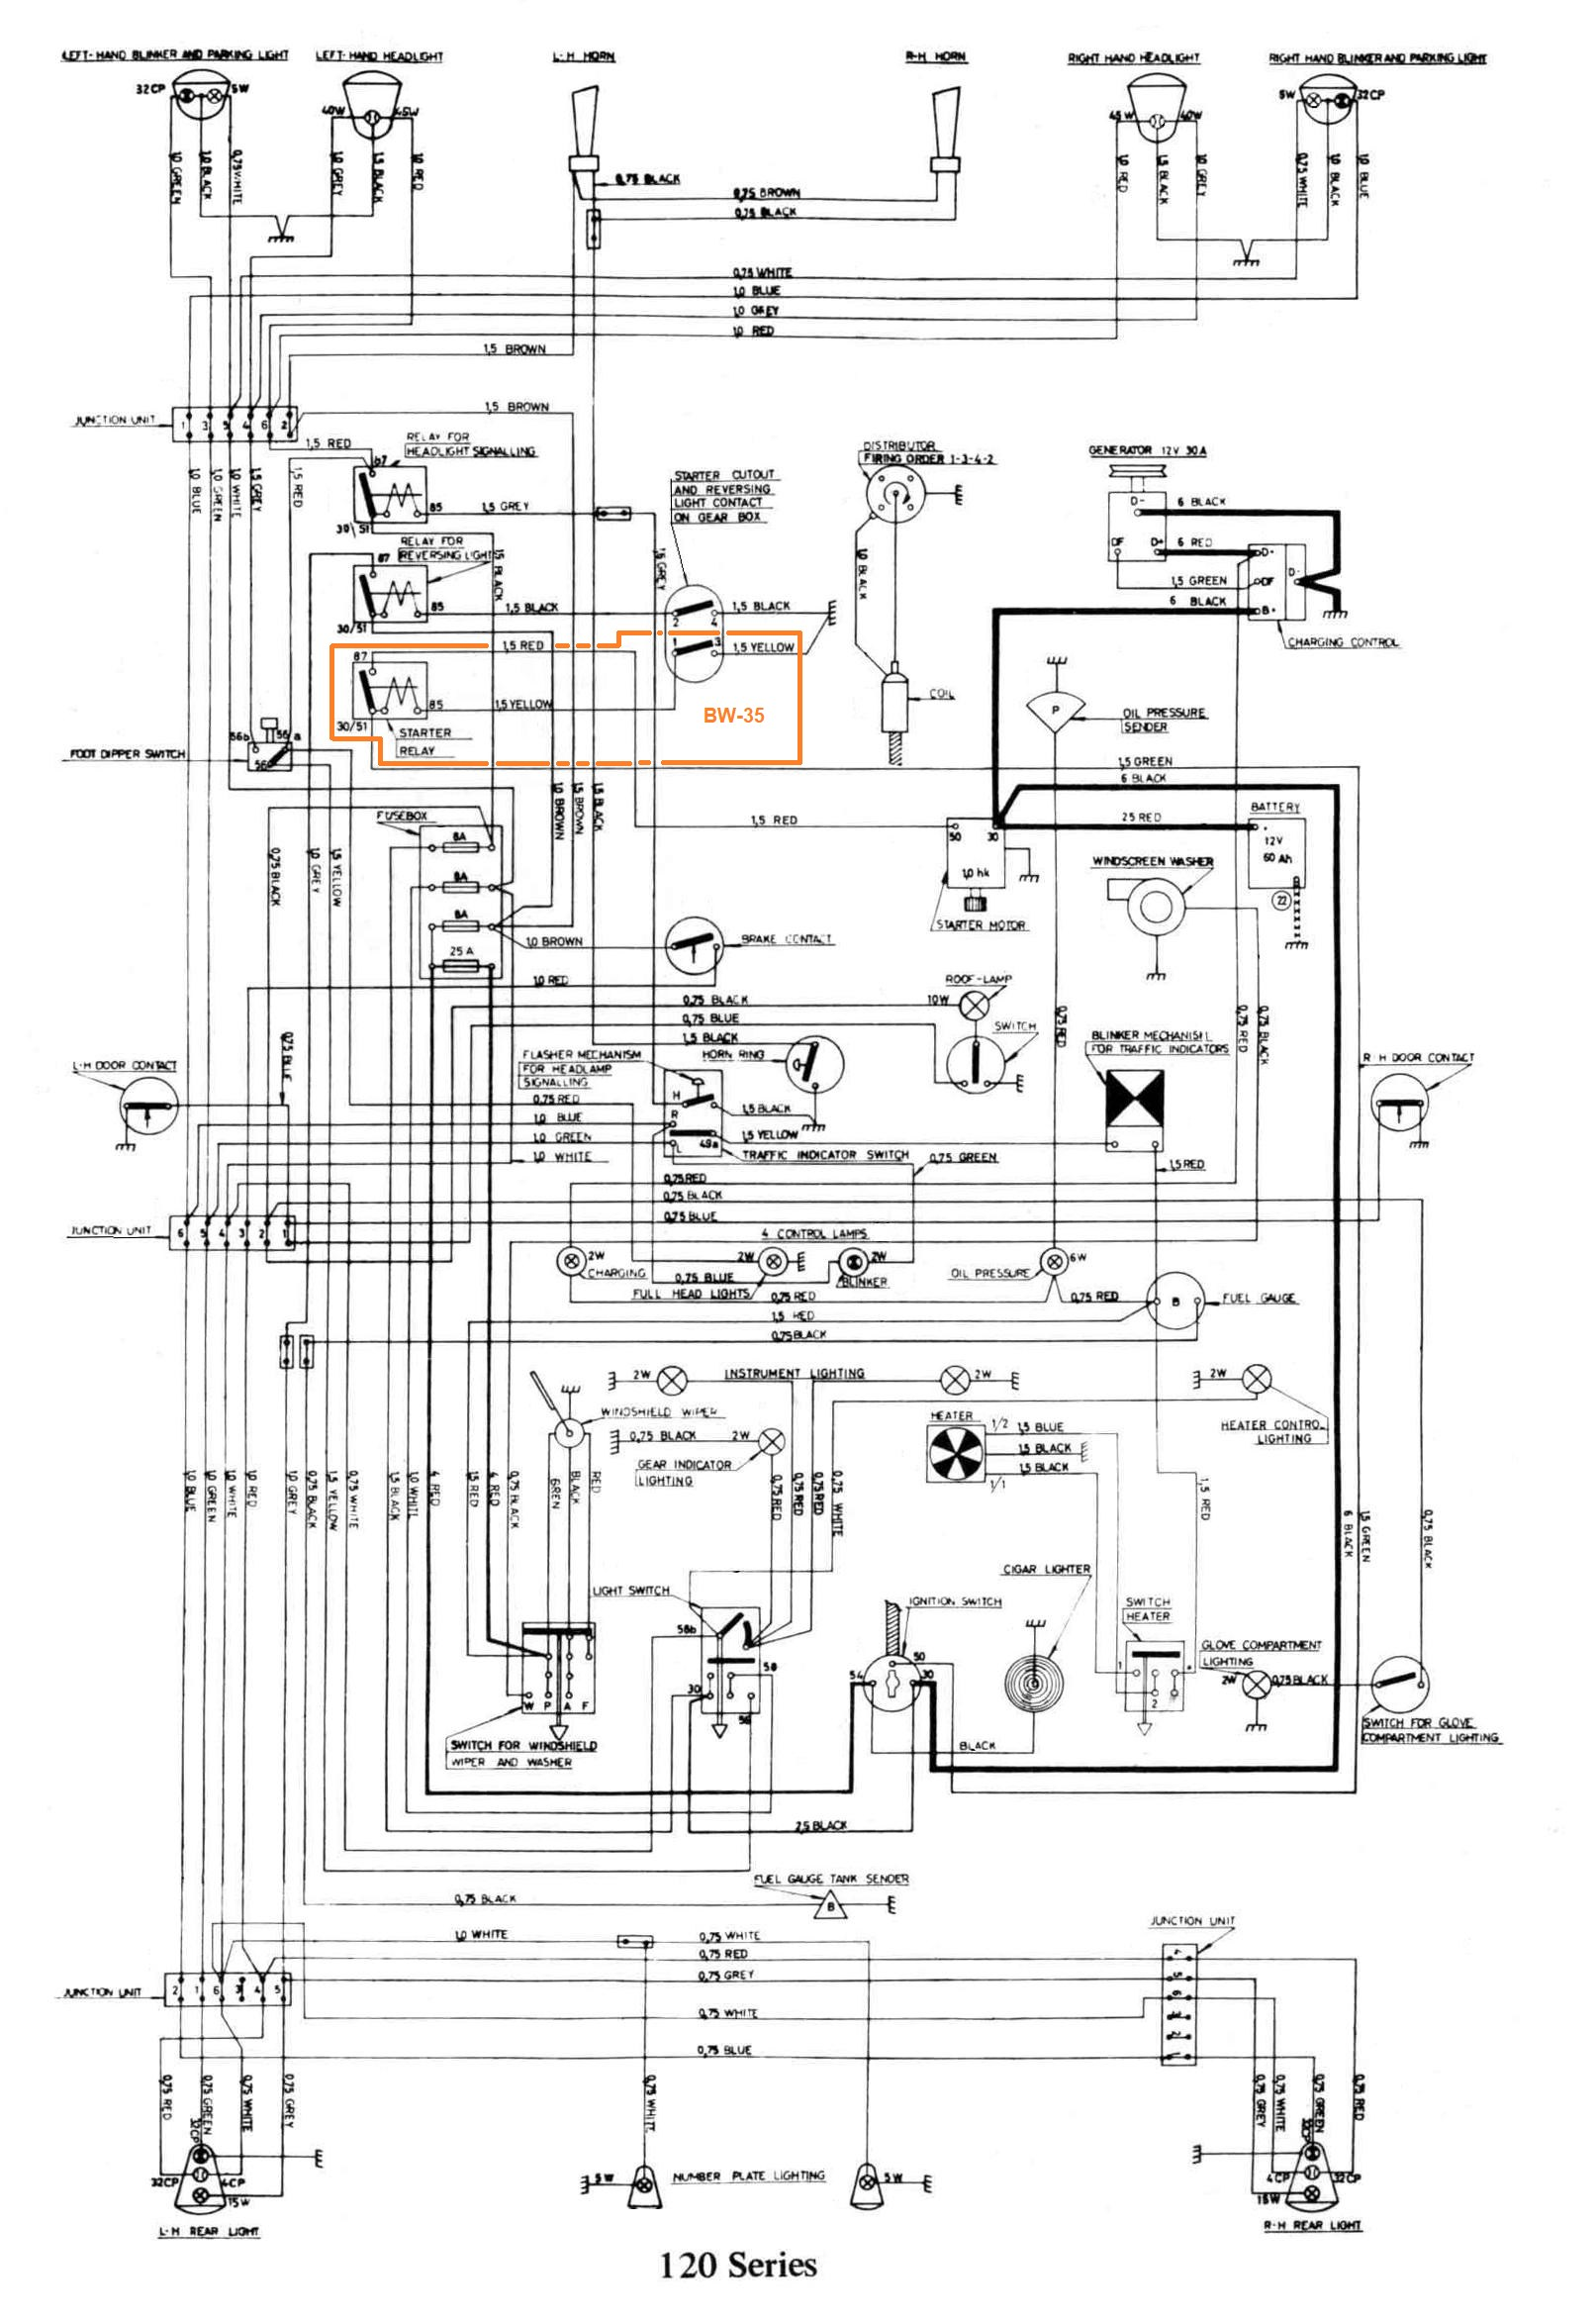 hight resolution of 1995 volvo 940 ac wiring diagram simple wiring schema wiring a 240v circuit 1992 volvo 240 ac wiring